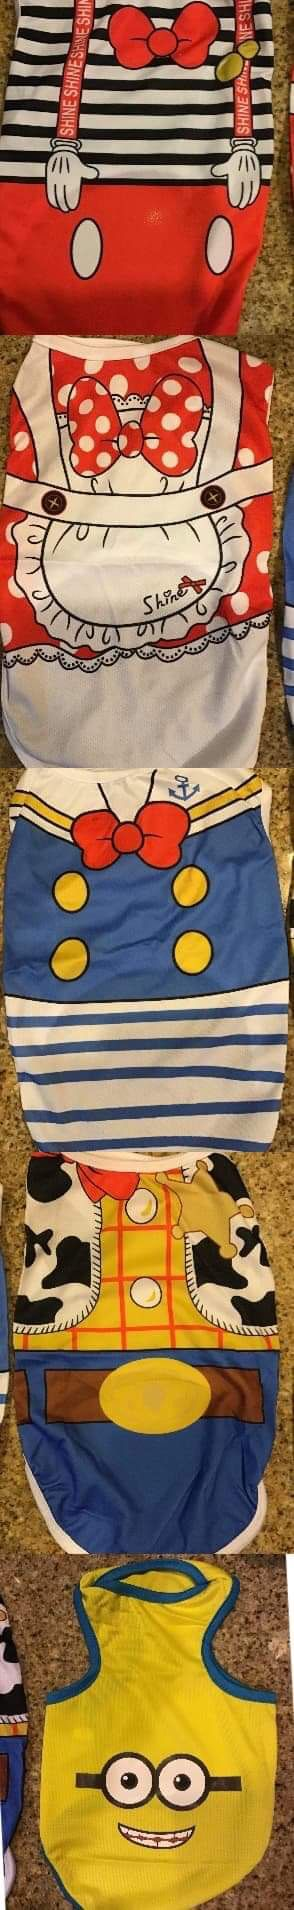 NEW DOG CLOTHES / CARTOON VEST / SHIRT / CLOTH FOR DOGS Sizes M, L, XL, XXL for Sale in Los Angeles, CA